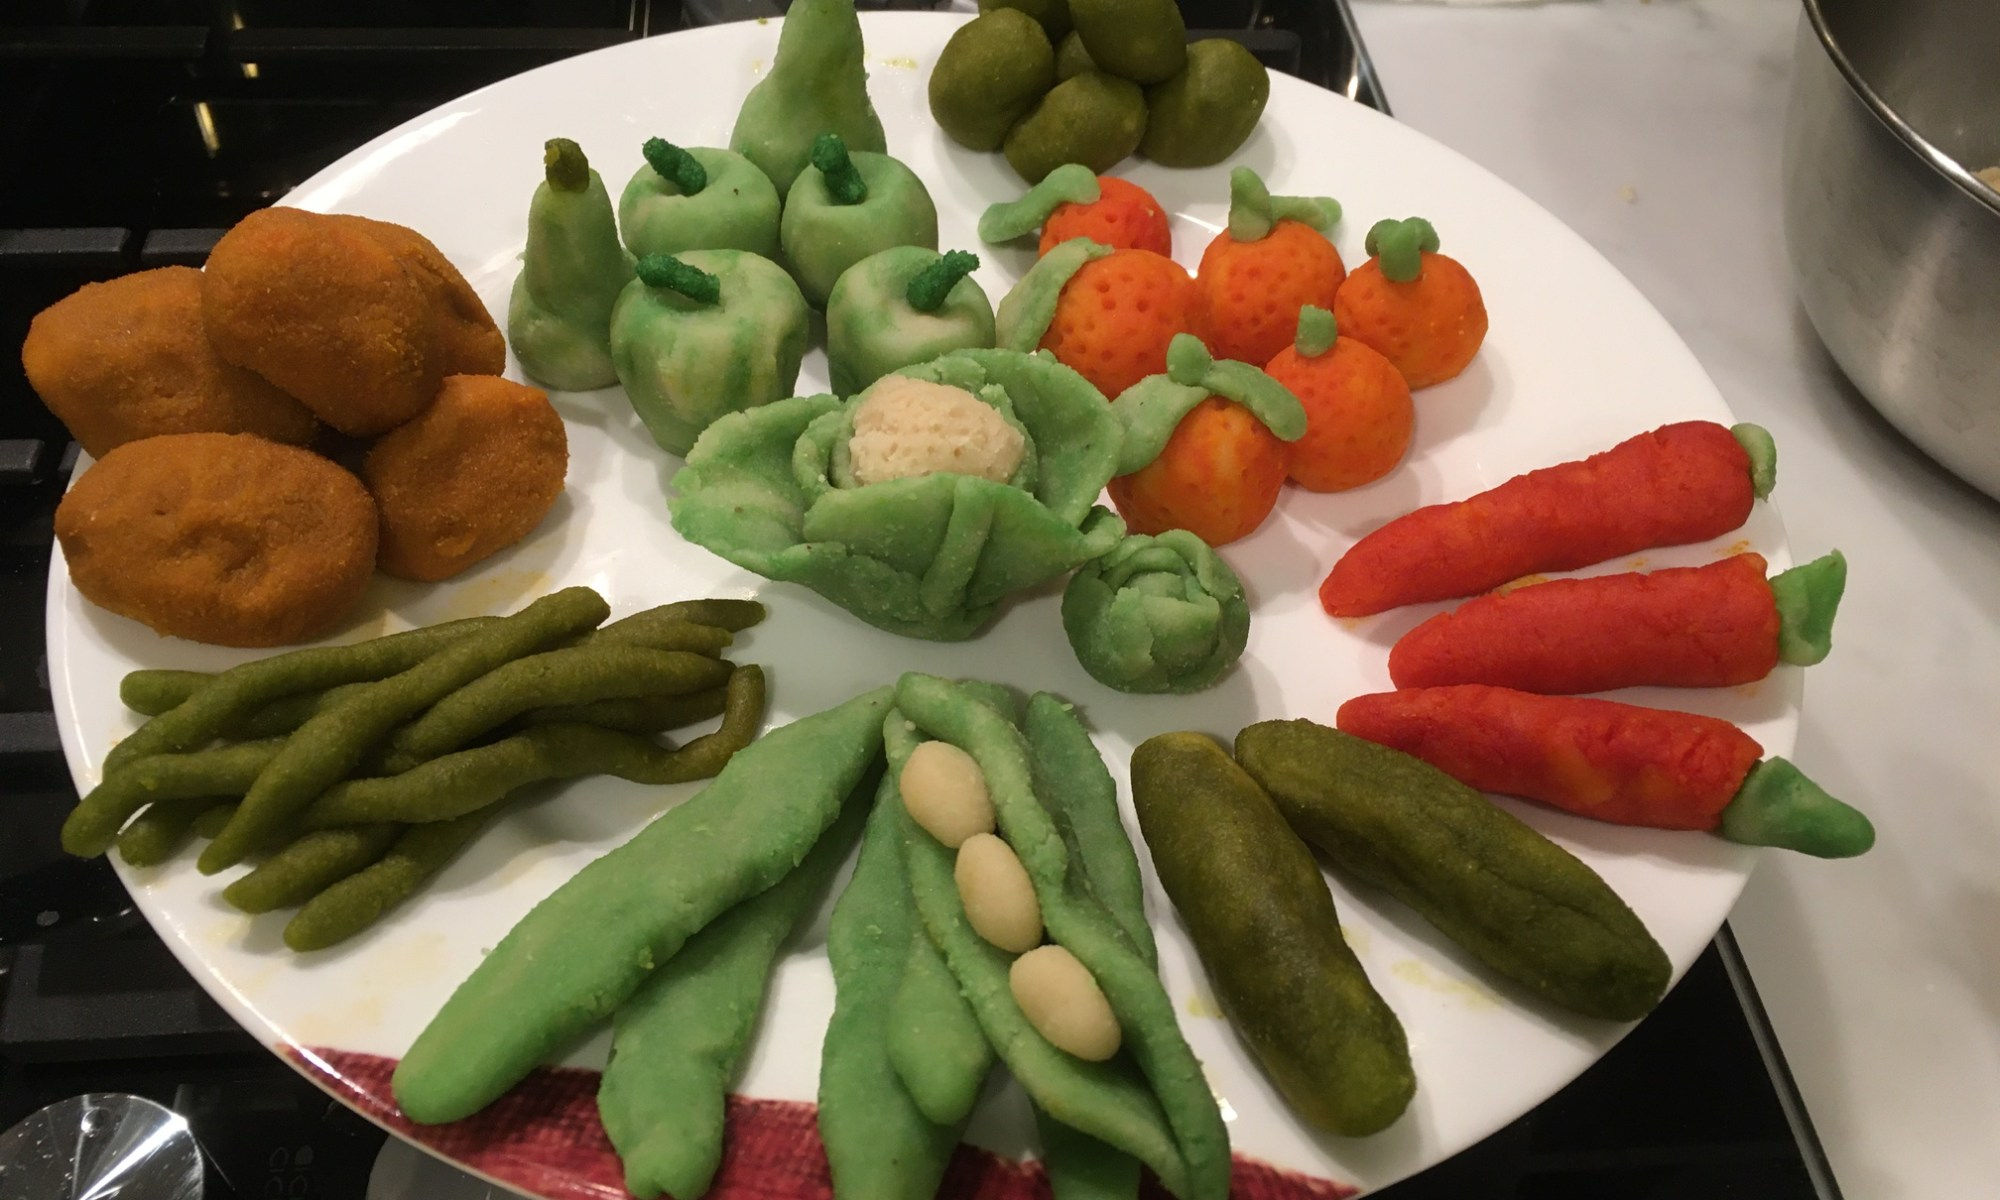 Sant Dionís sweets - from la Mocaorà - image depicting small colourful sweets shaped like fruits and vegetables